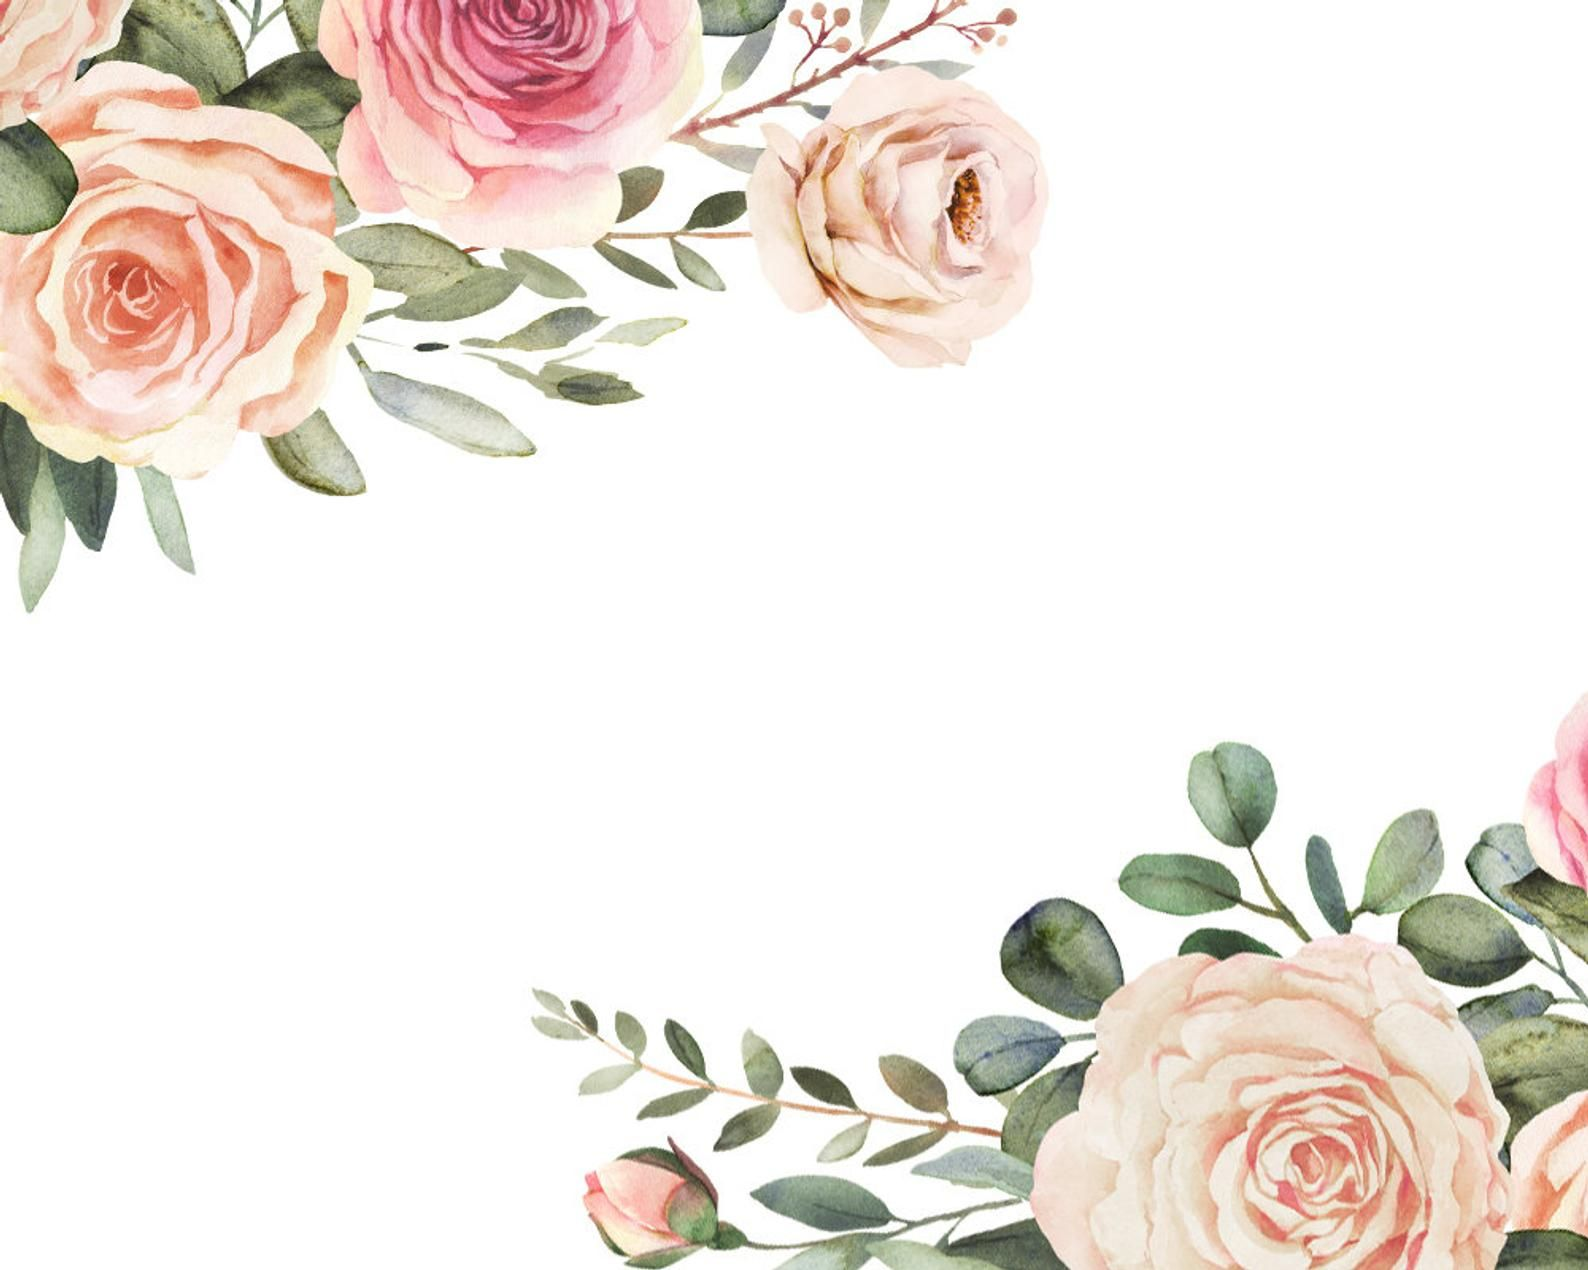 Elegant Watercolor Clipart With Roses And Eucalyptus Greenery